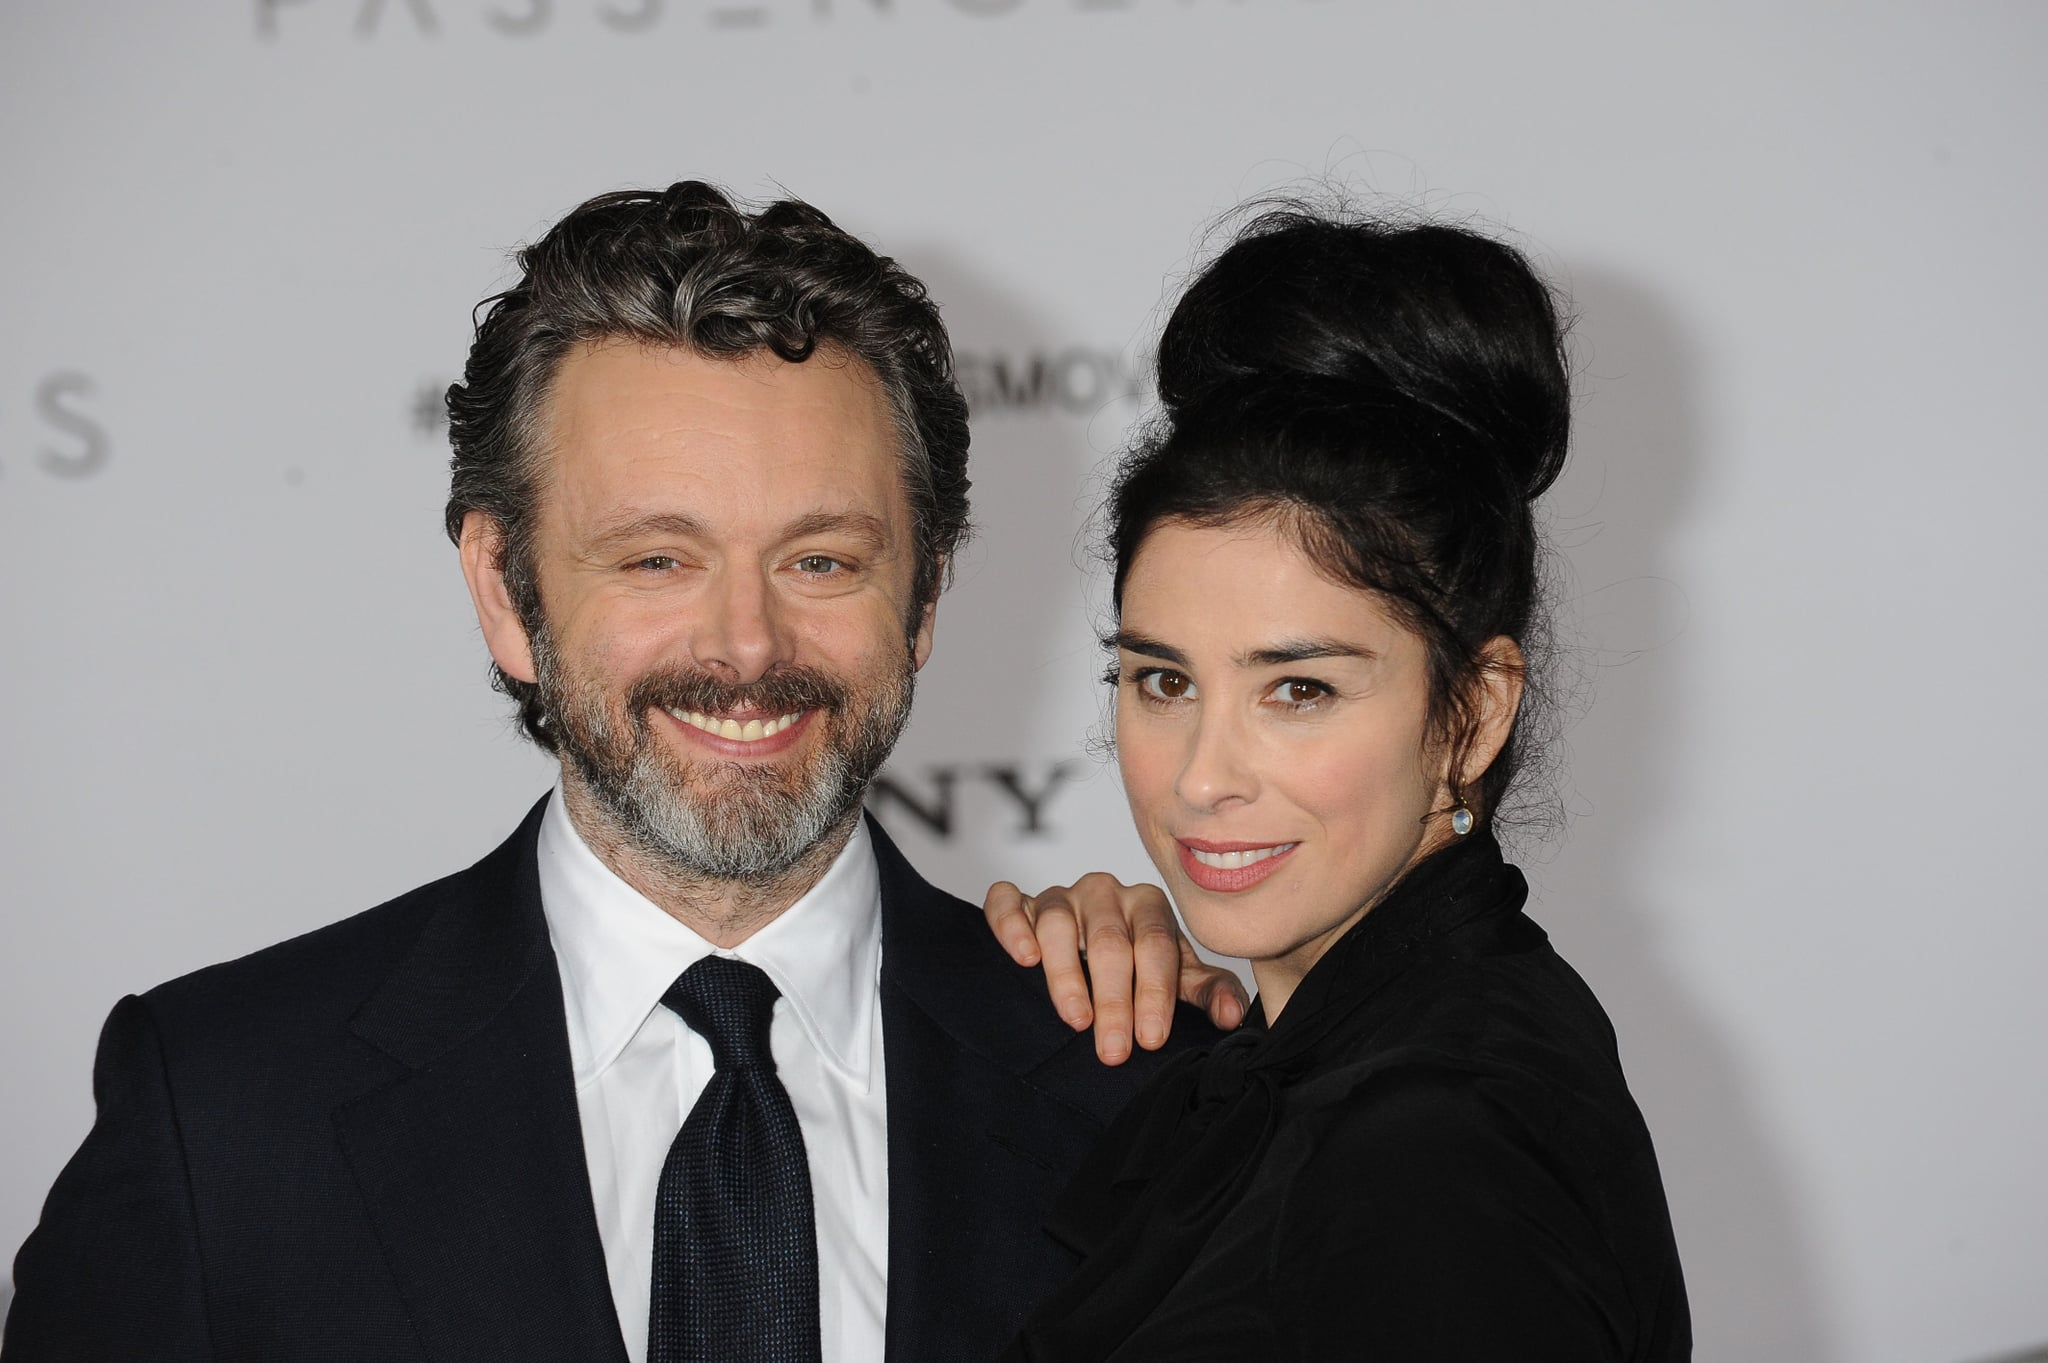 Sarah Silverman announces split from Michael Sheen after four years